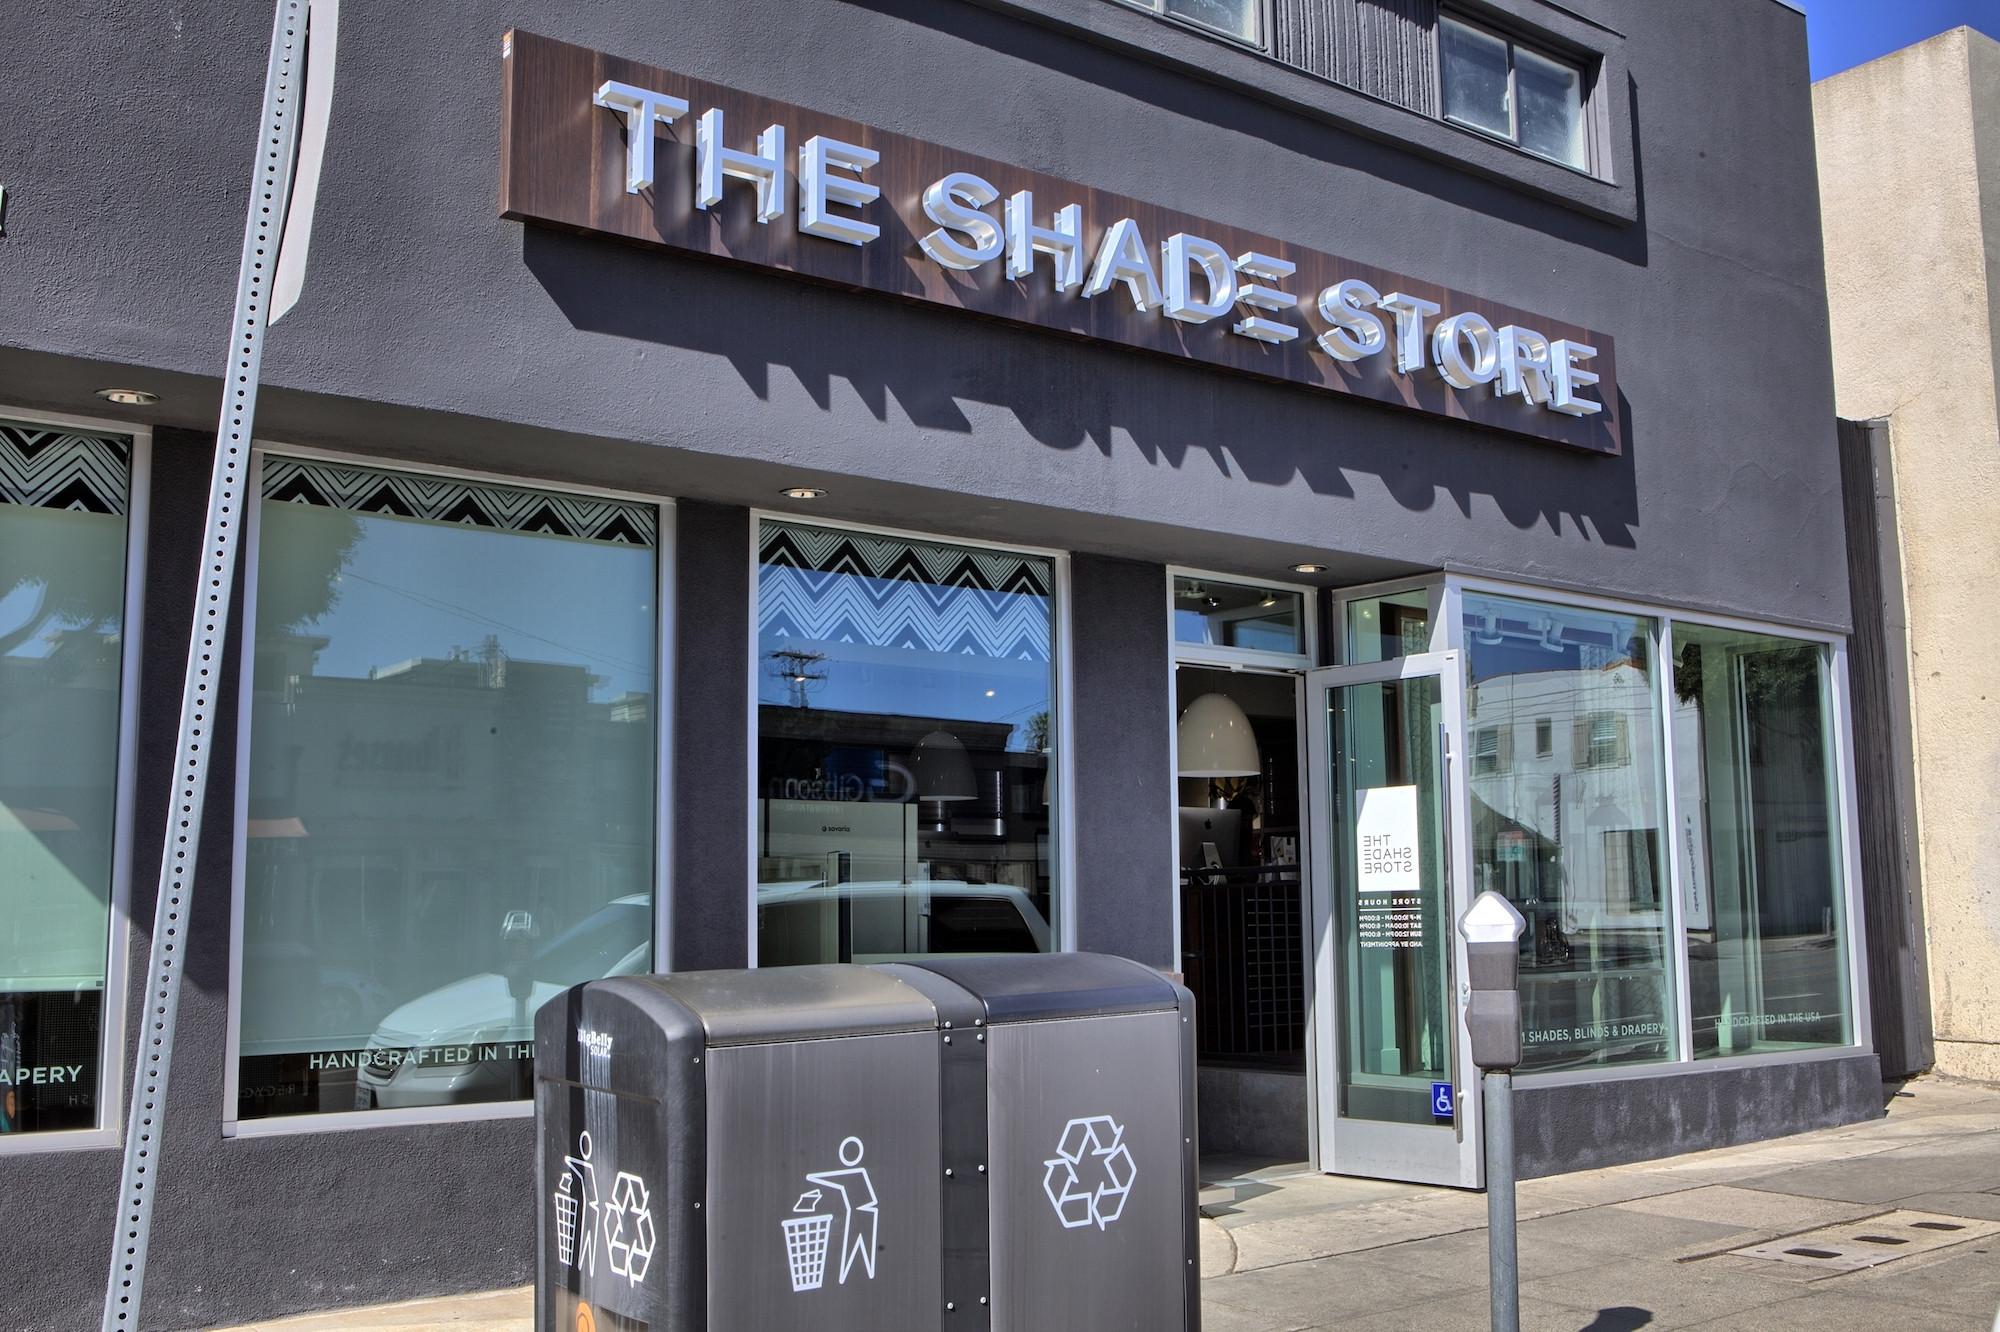 The Shade Store is a great family-owned, faced paced company. Once your particular duties are fulfilled there is usually time to work on assigned processed-based projects/5(11).